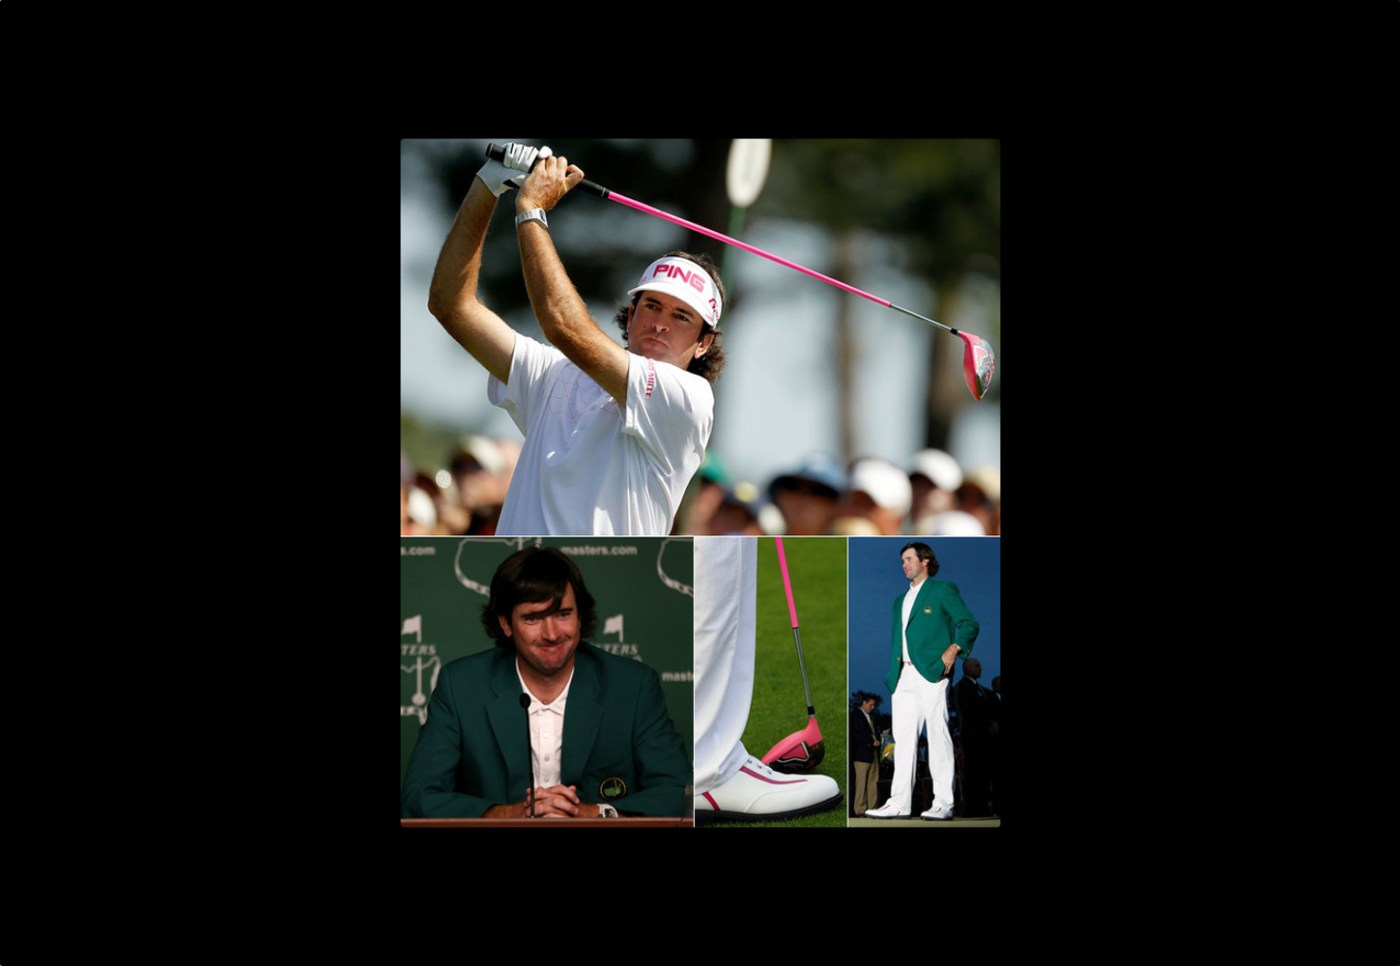 Bubba Watson winning Masters with Richard Mille on his wrist